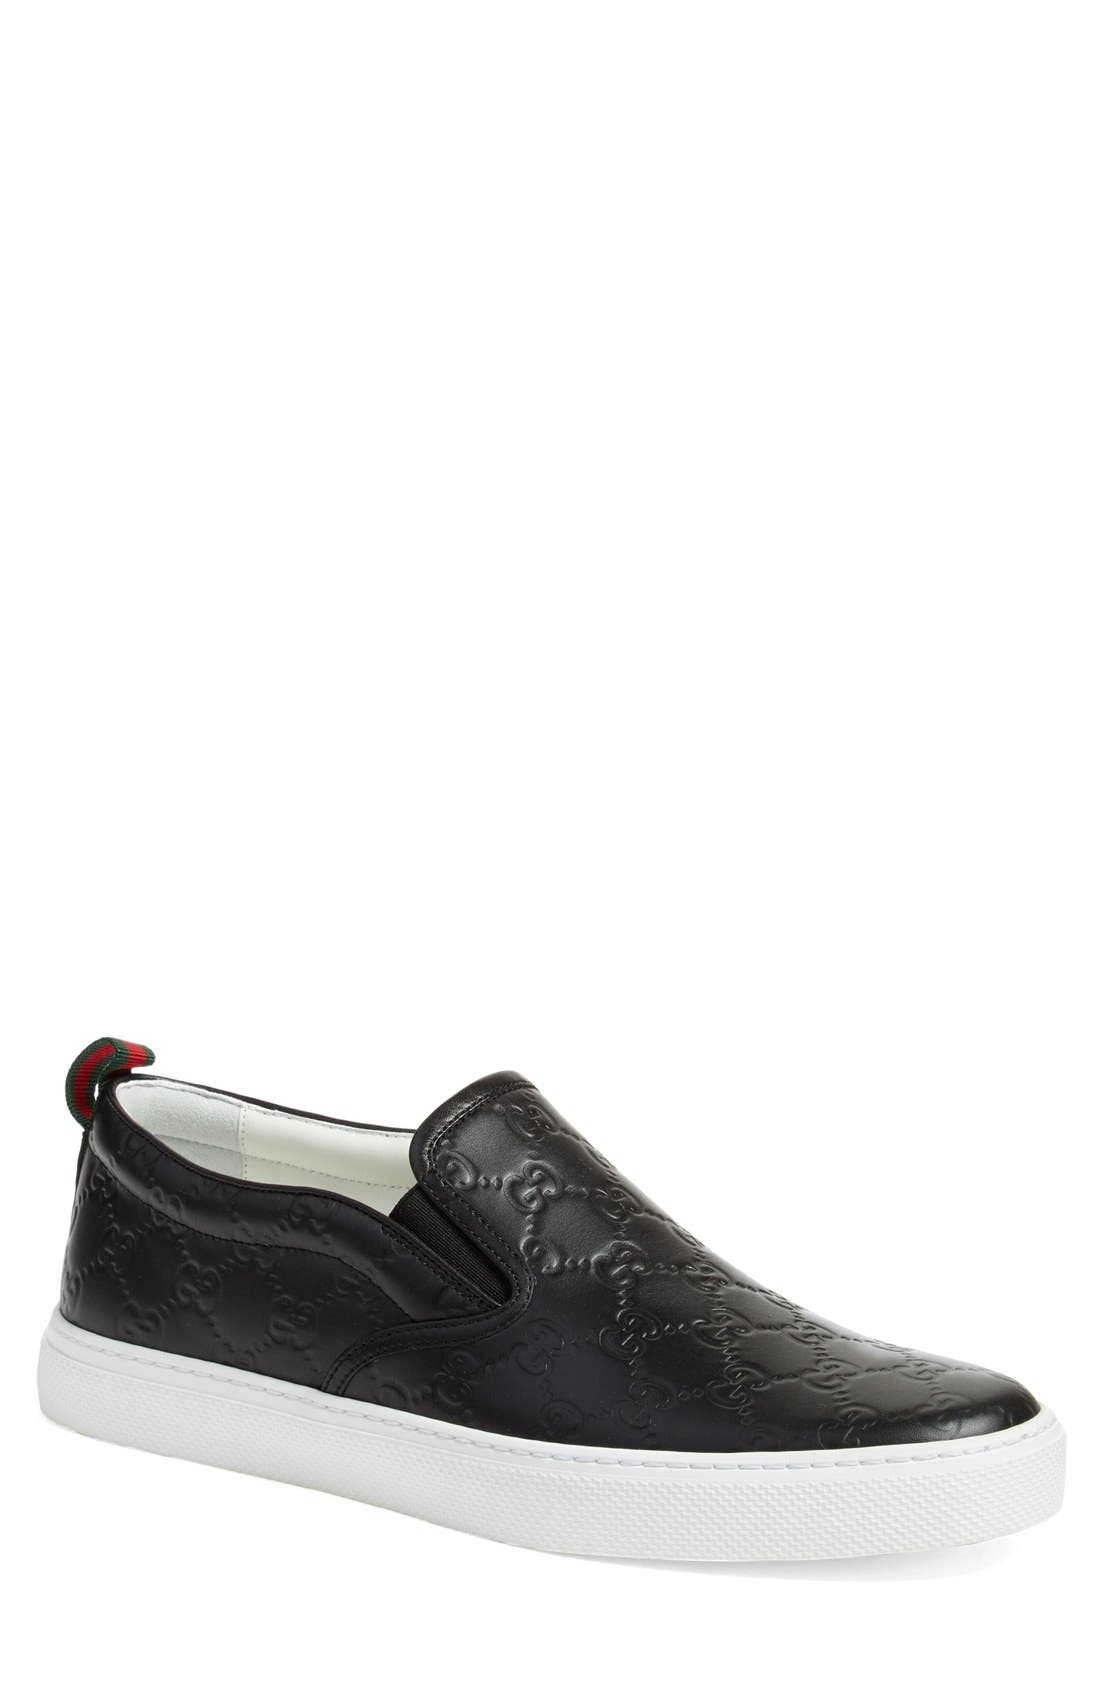 GUCCI, Dublin Slip-On Sneaker, Main thumbnail 1, color, NERO EMBOSSED LEATHER